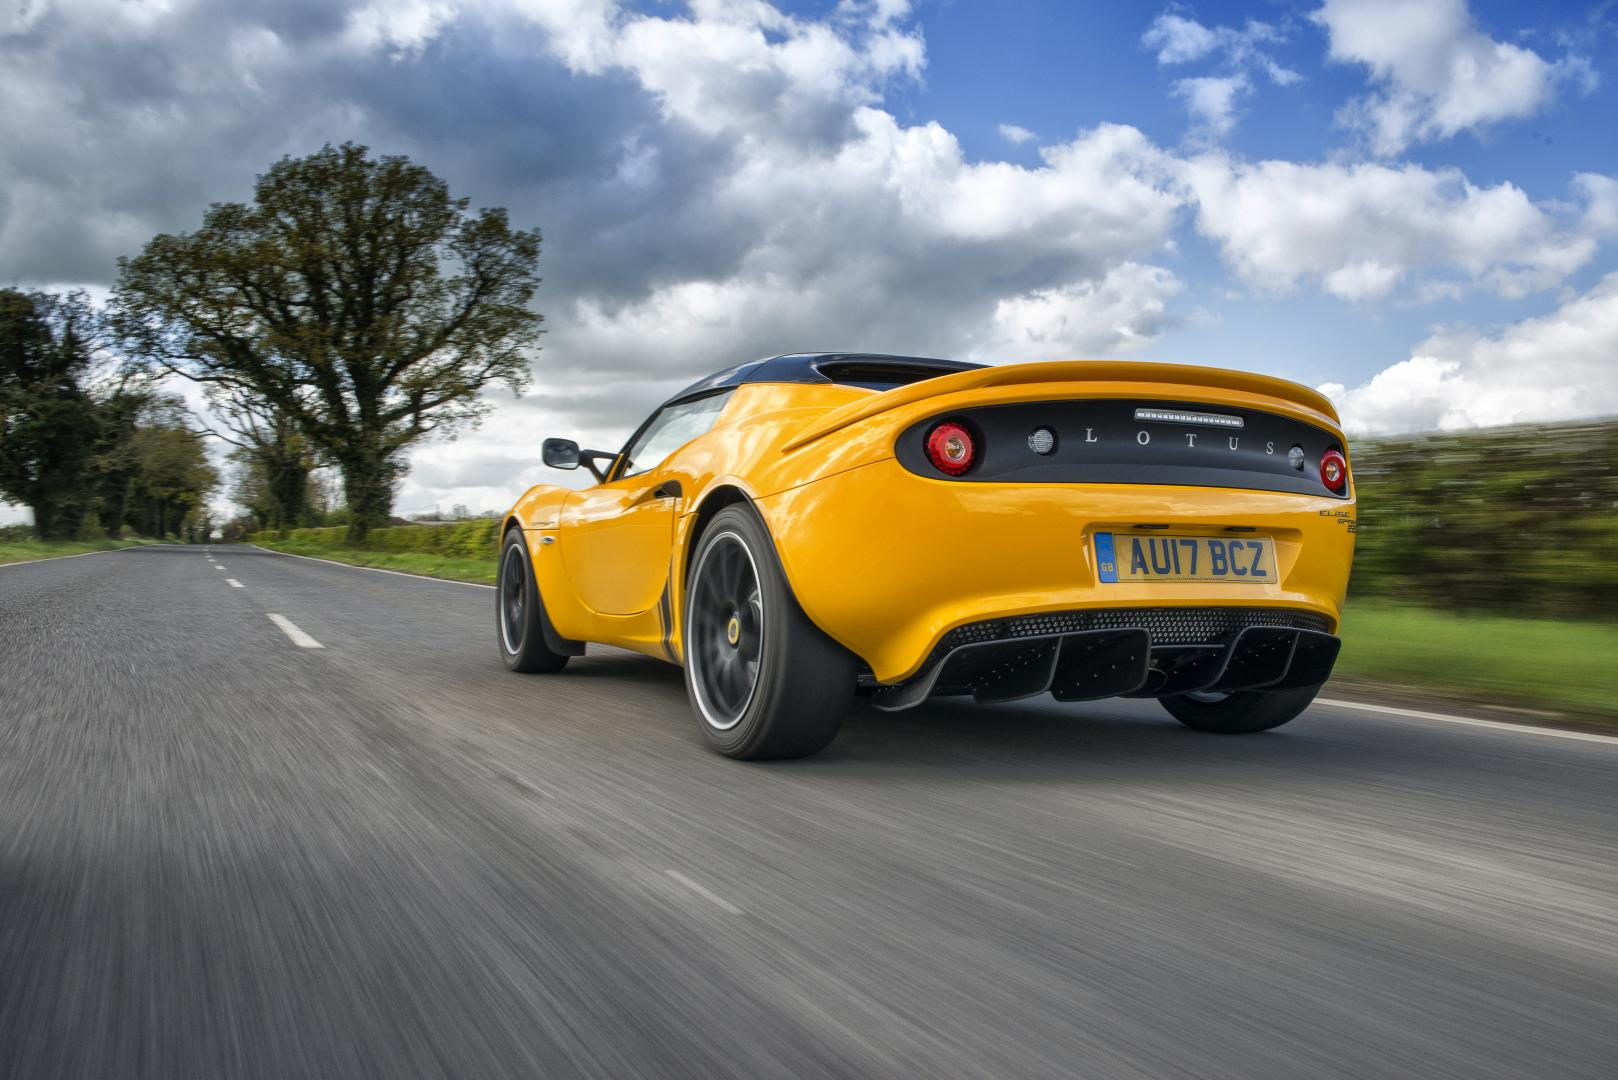 lotus elise 220 sprint autotest en specificaties topgear nederland. Black Bedroom Furniture Sets. Home Design Ideas